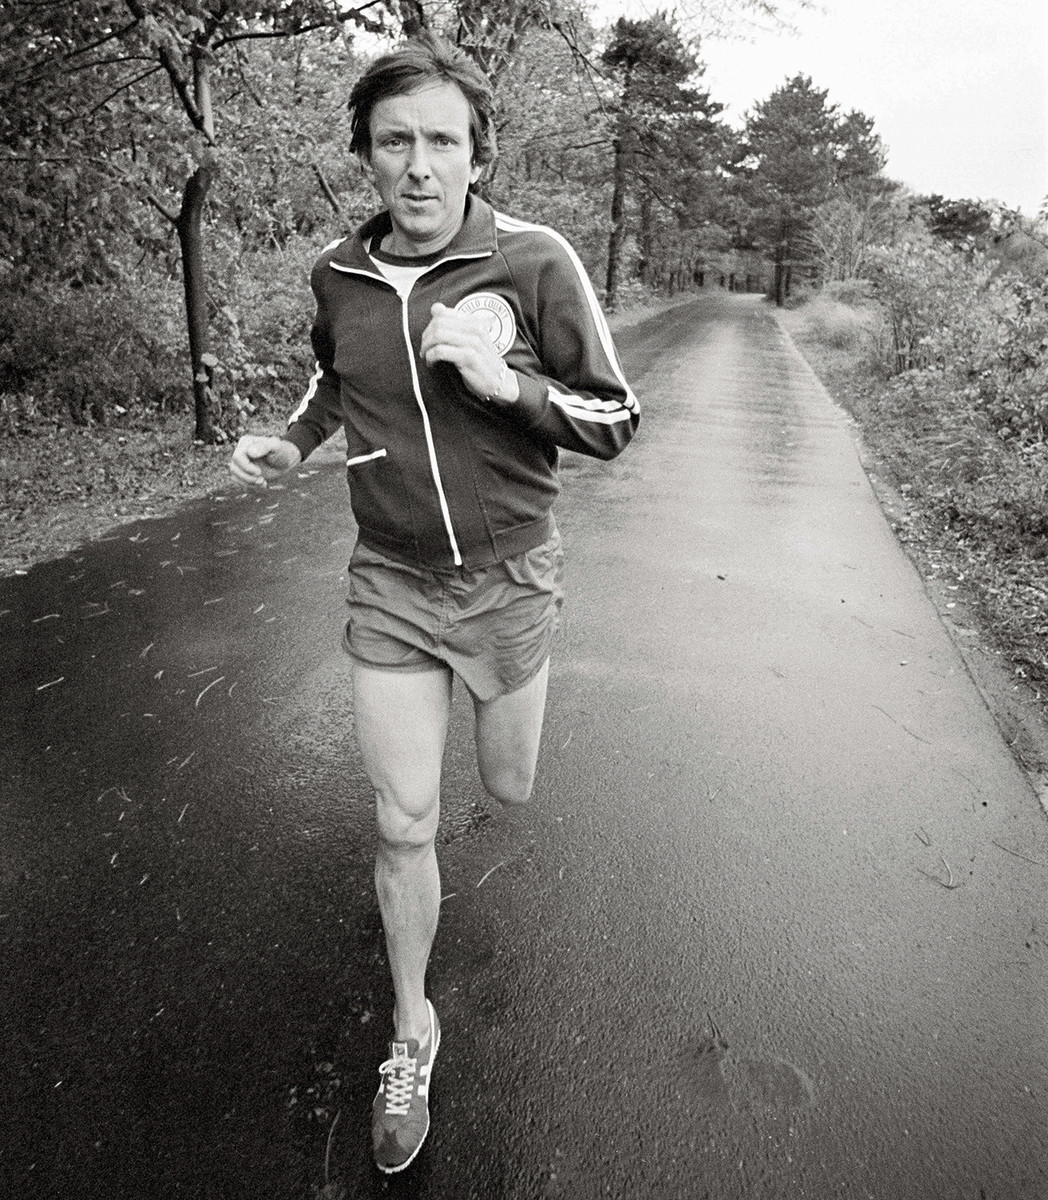 By 1977, Fixx had run to the forefront of the nascent jogging movement.